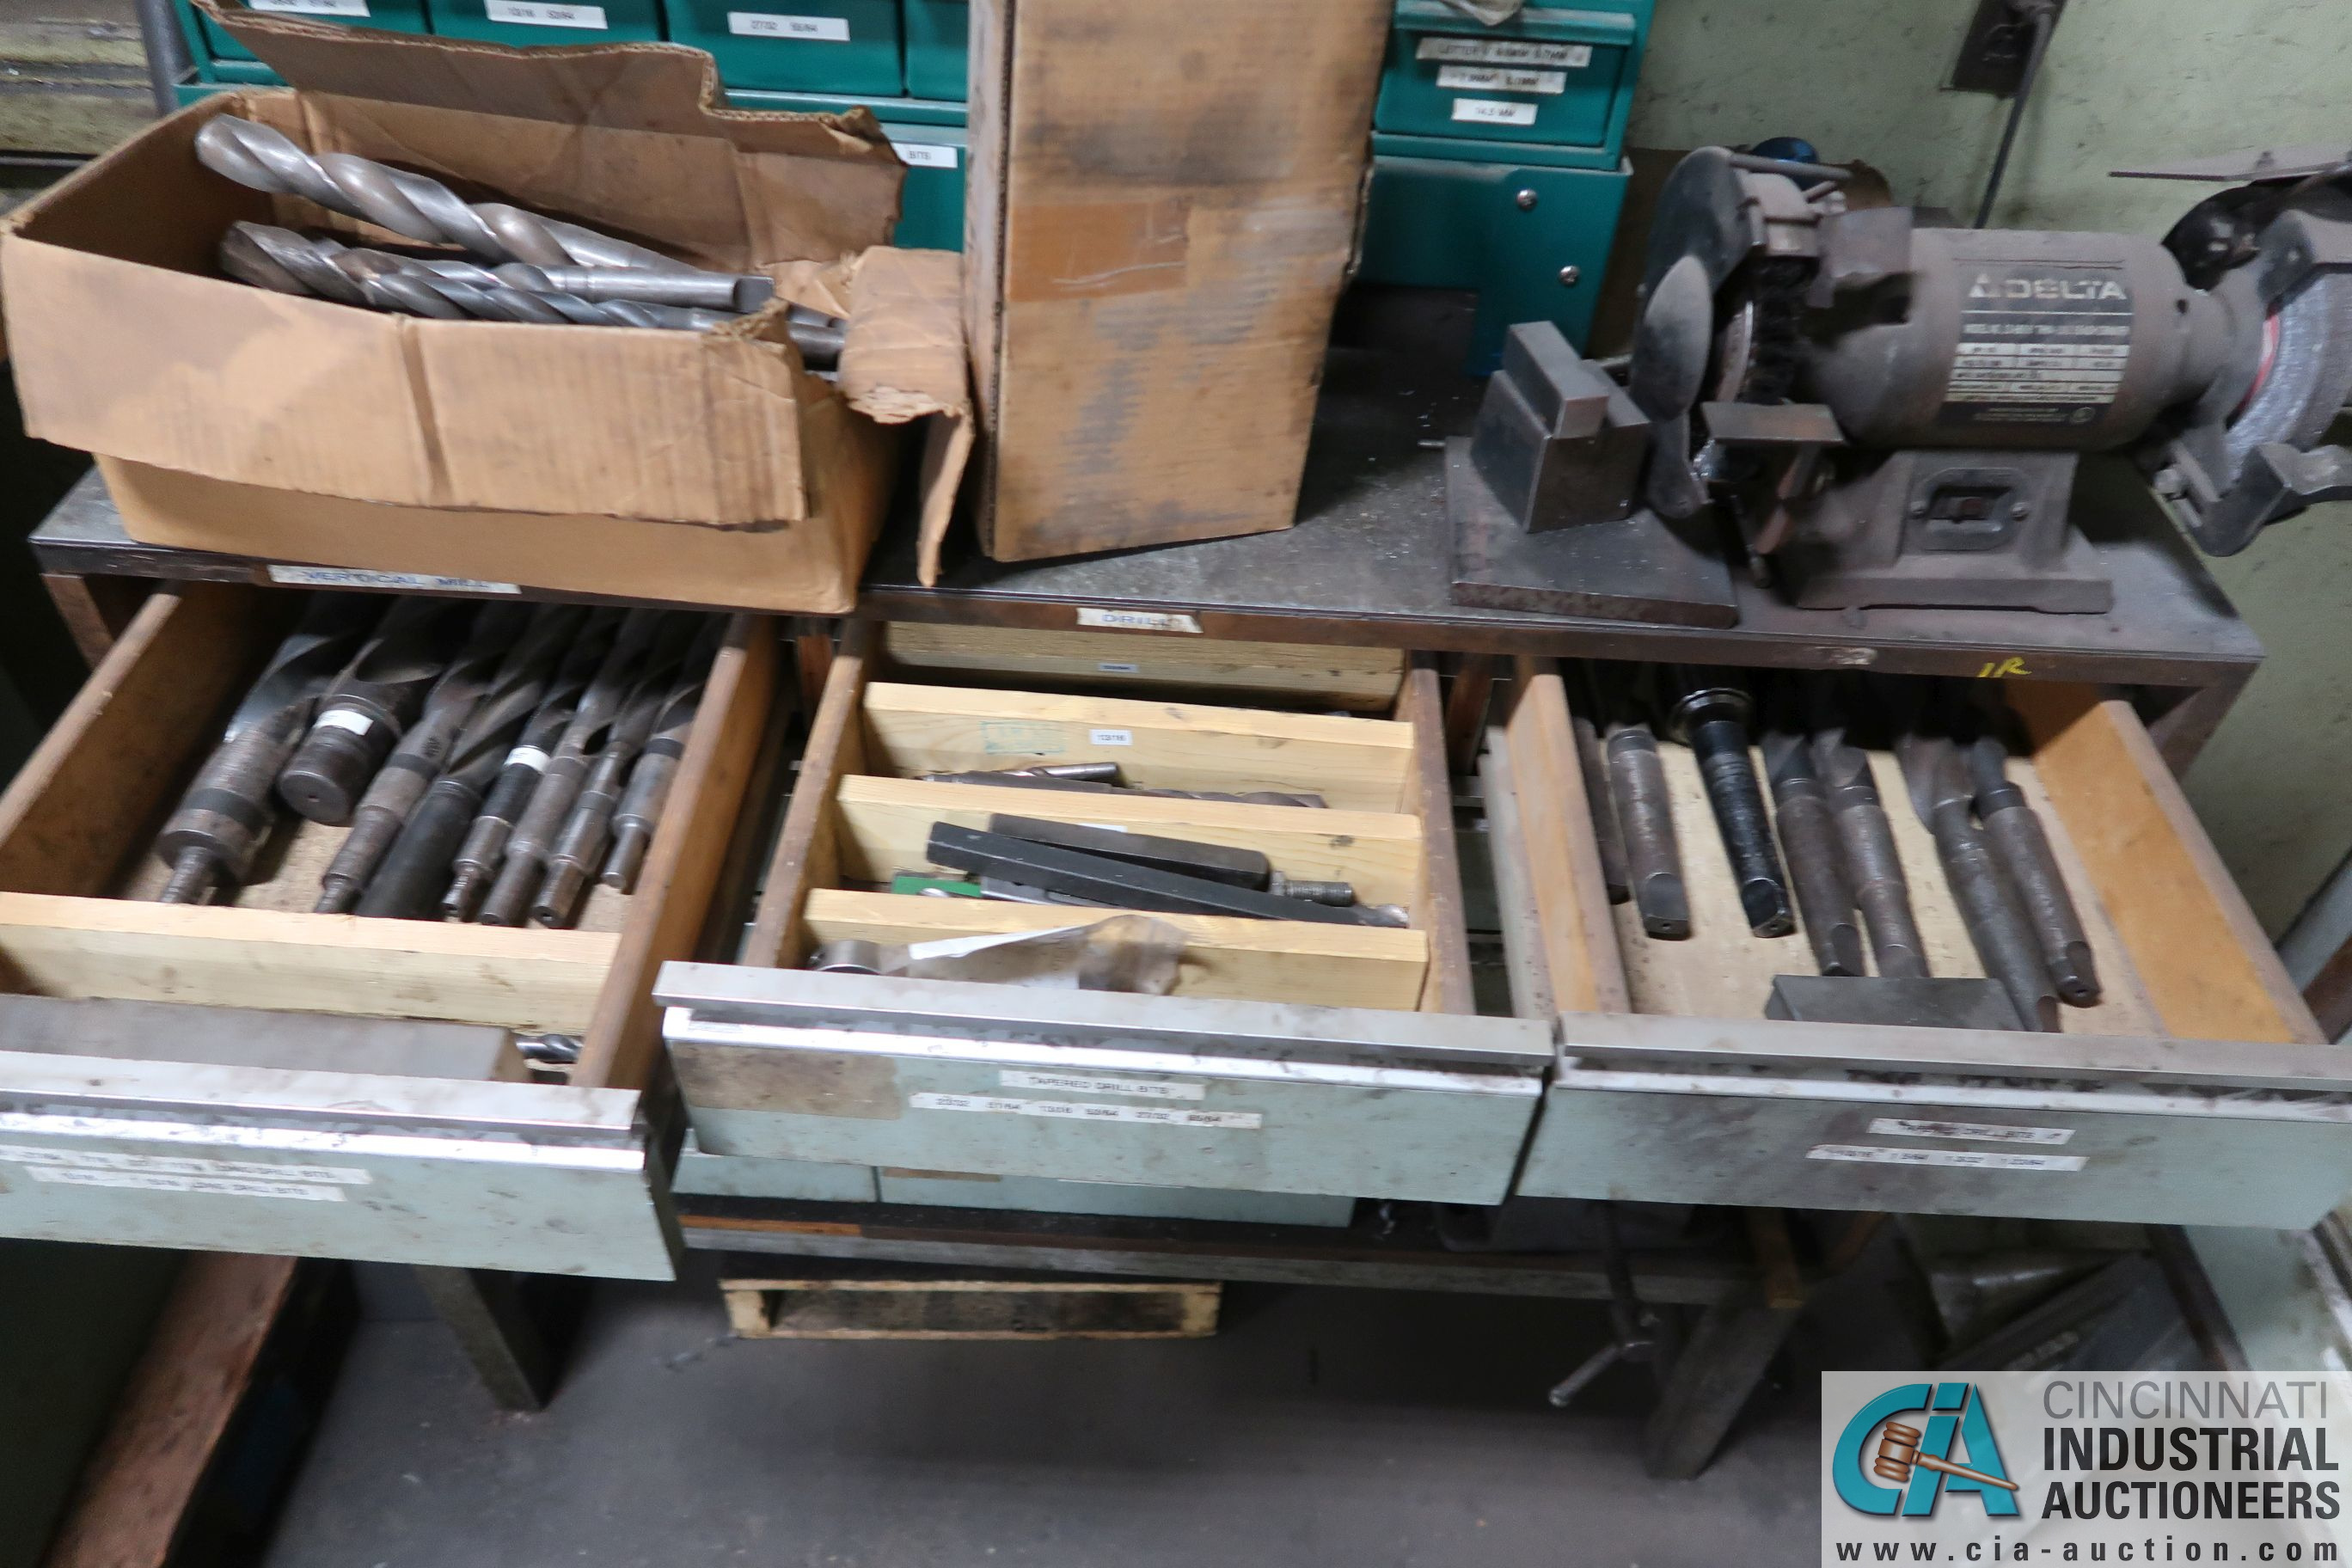 CABINETS WITH MISC. TOOLING, PARTS, HOLD DOWNS - Image 6 of 15